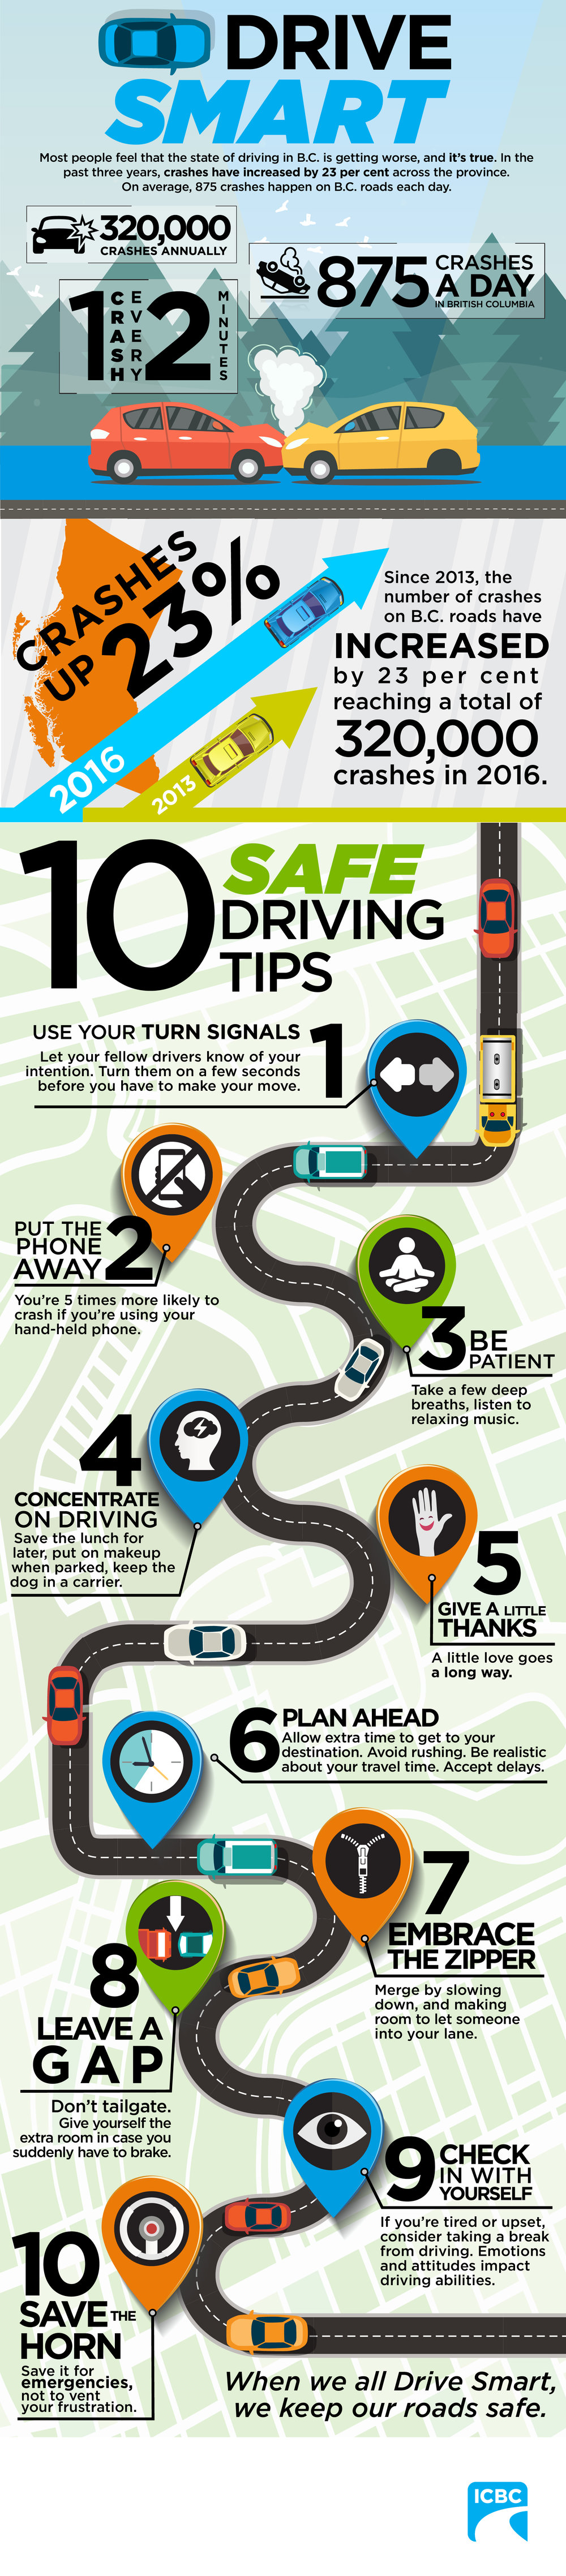 ICBC Drive Smart Infographic